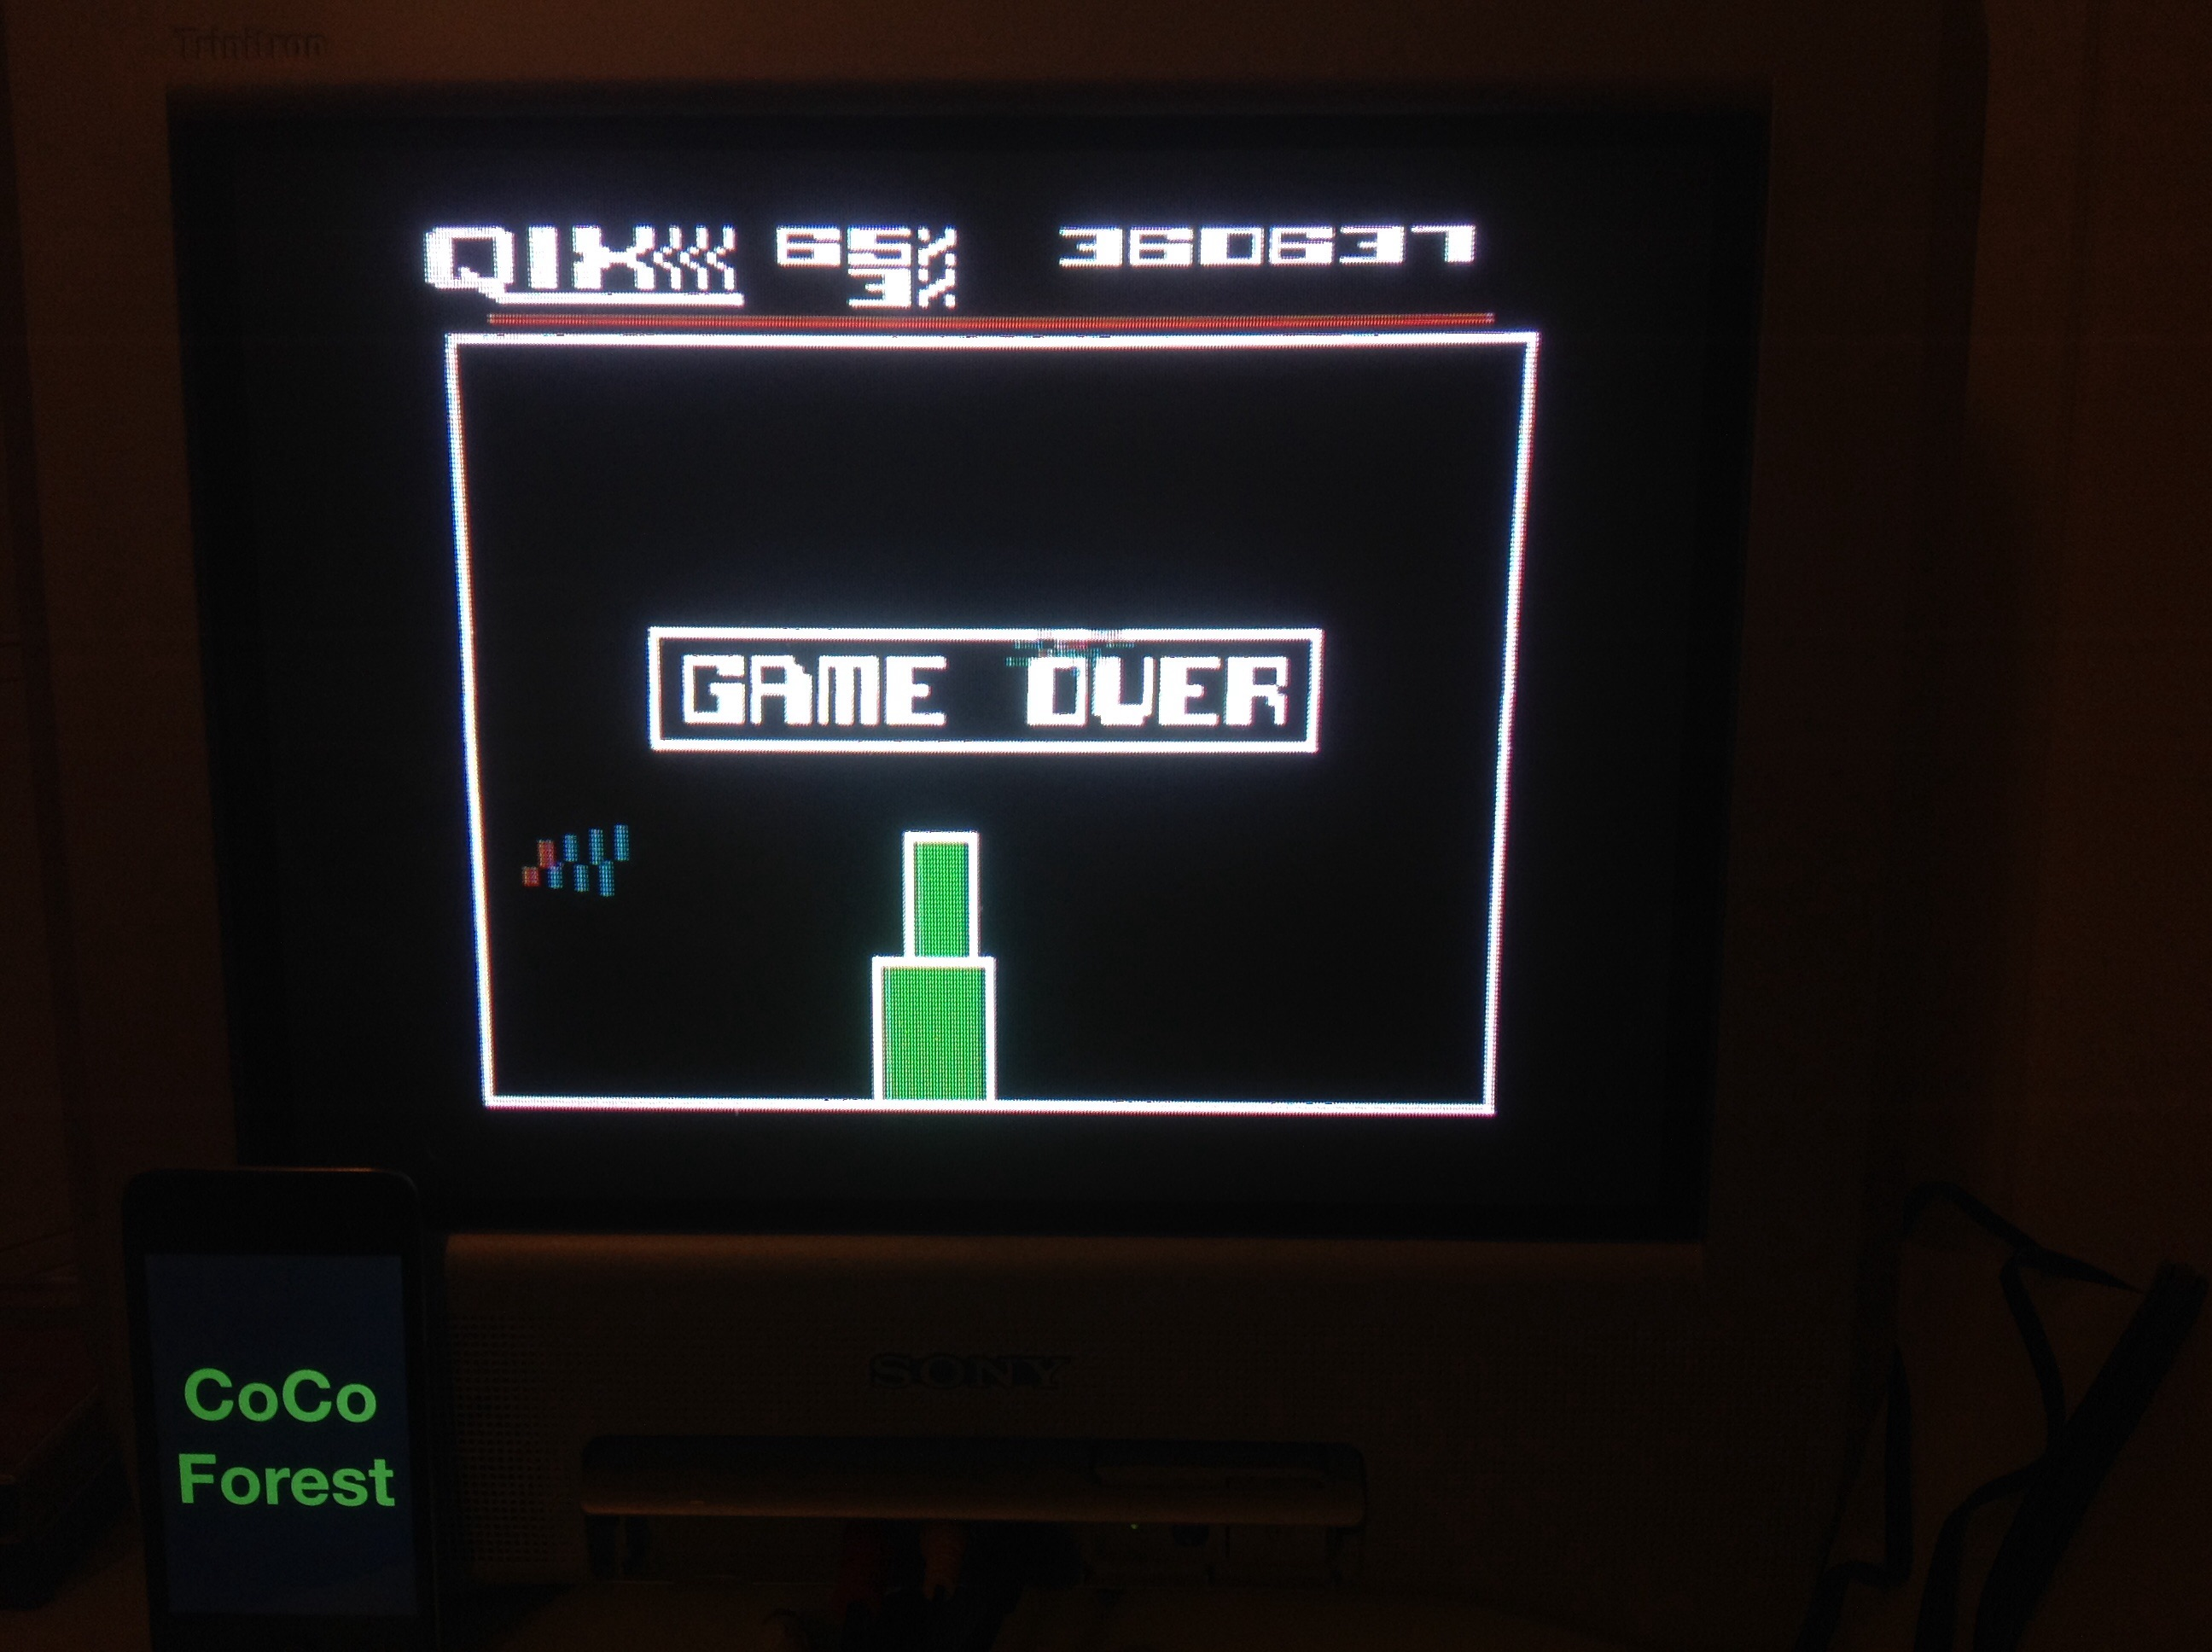 CoCoForest: Qix: Skilled (Atari 5200) 360,637 points on 2014-11-03 13:26:43